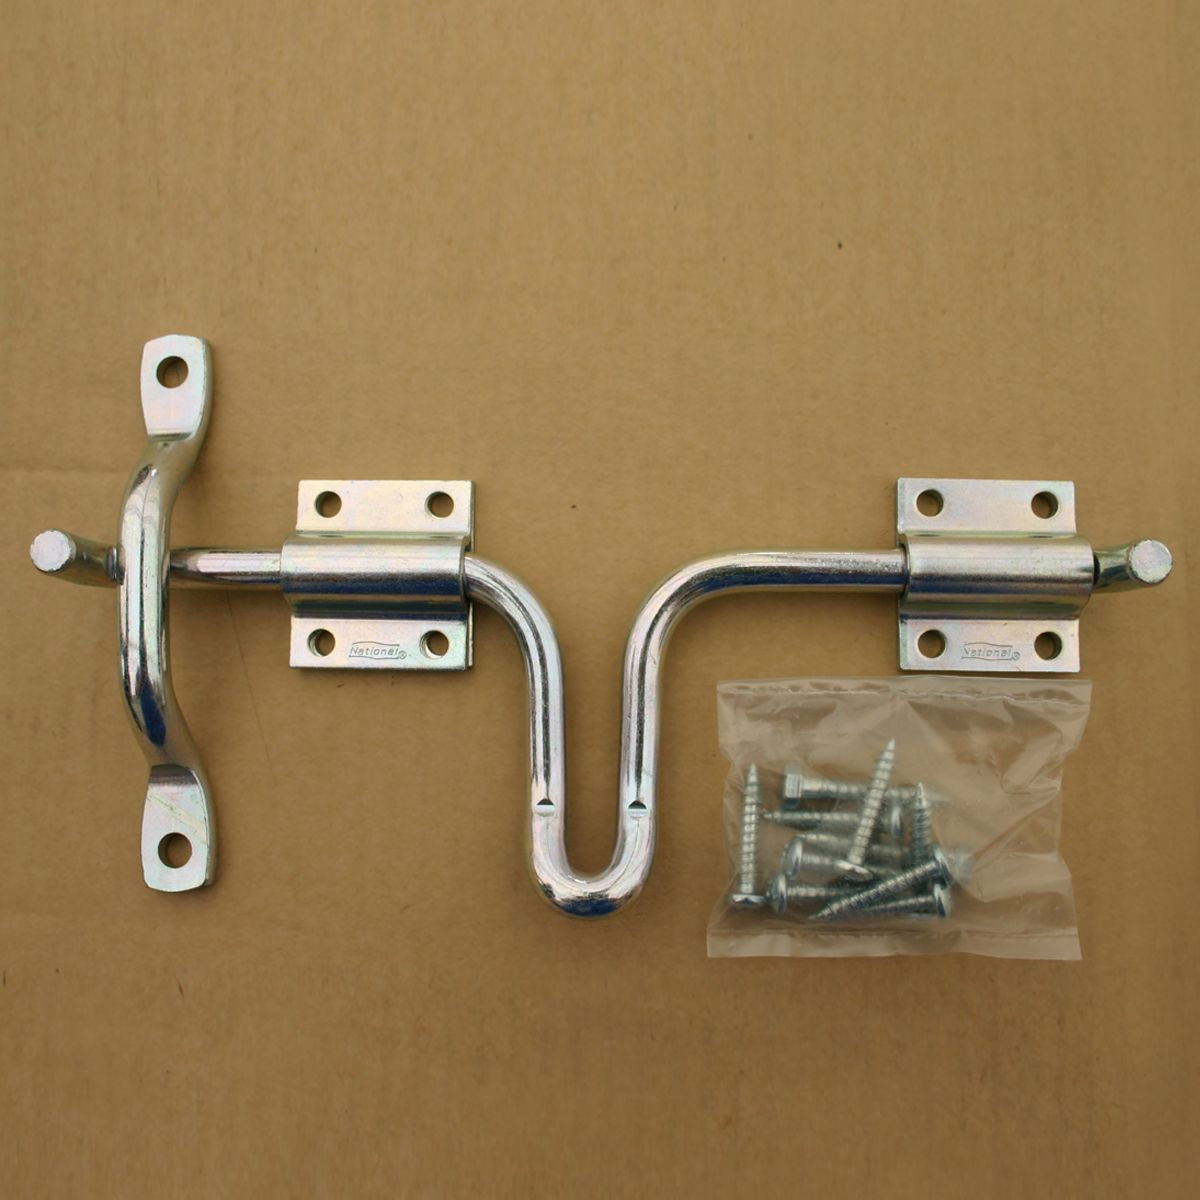 Image result for simple homemade gate latches | Yard | Pinterest